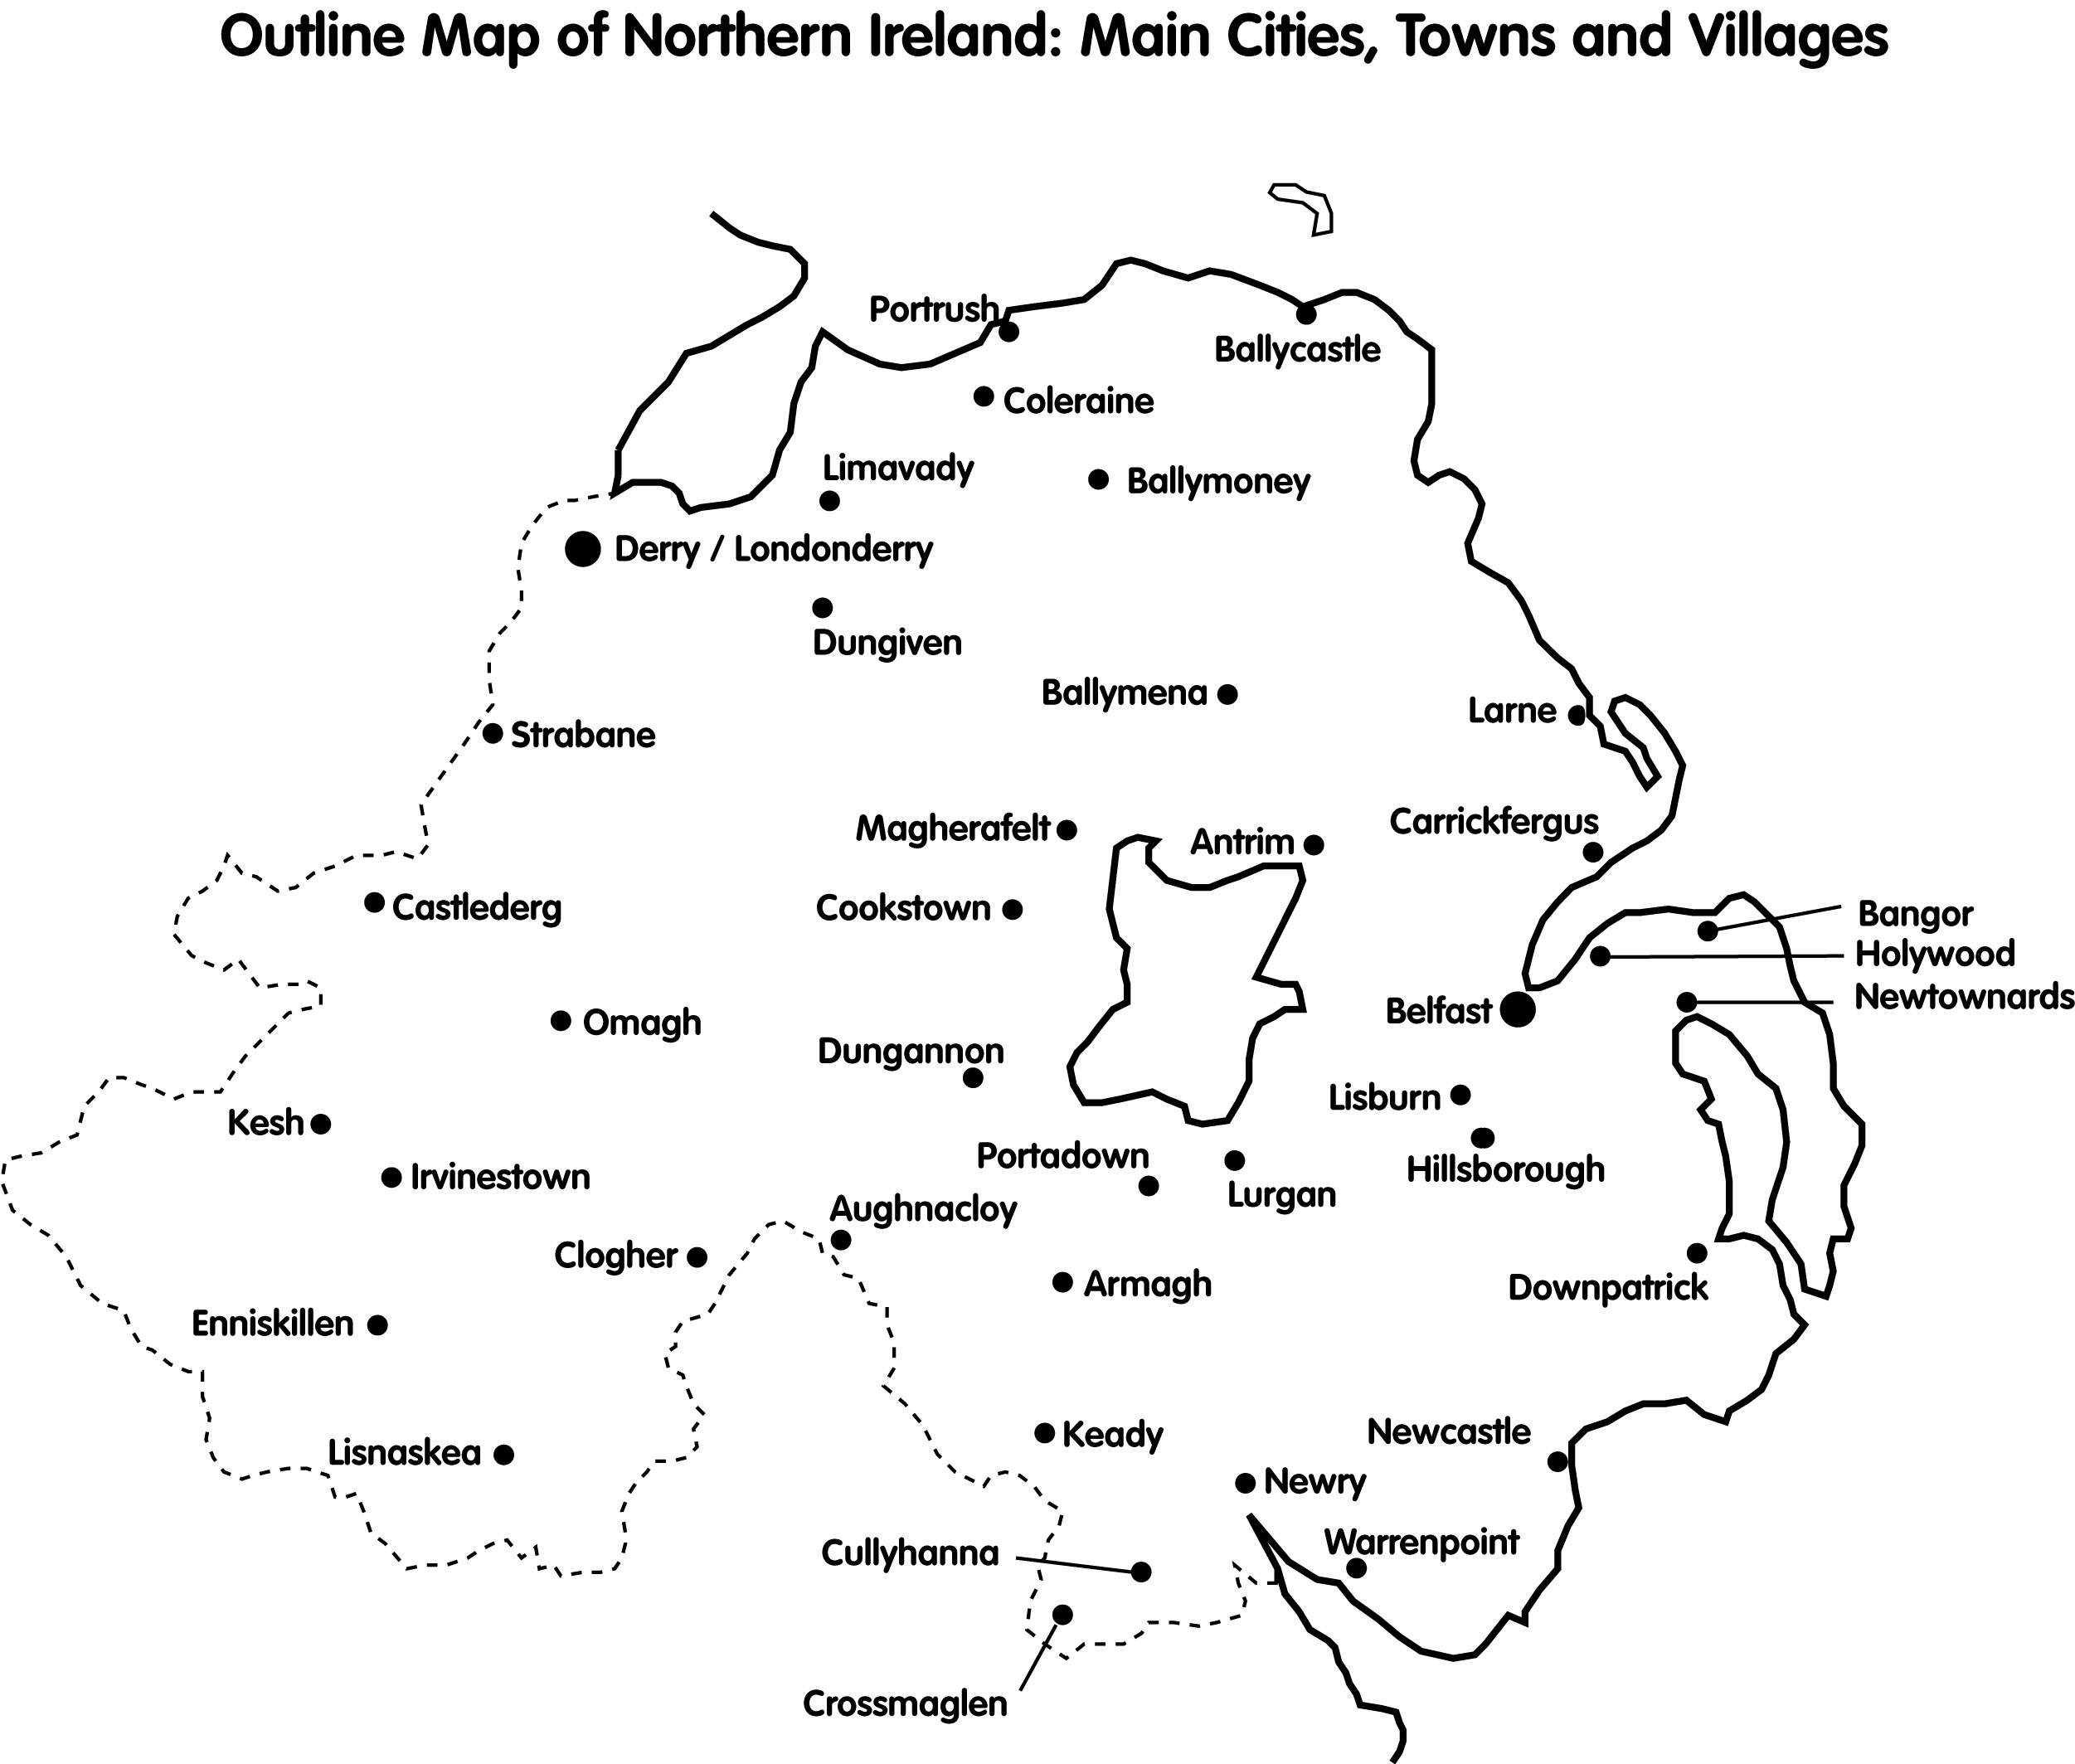 Ireland And Northern Ireland Map.Cain Maps Outline Map Of Northern Ireland Main Cities Towns